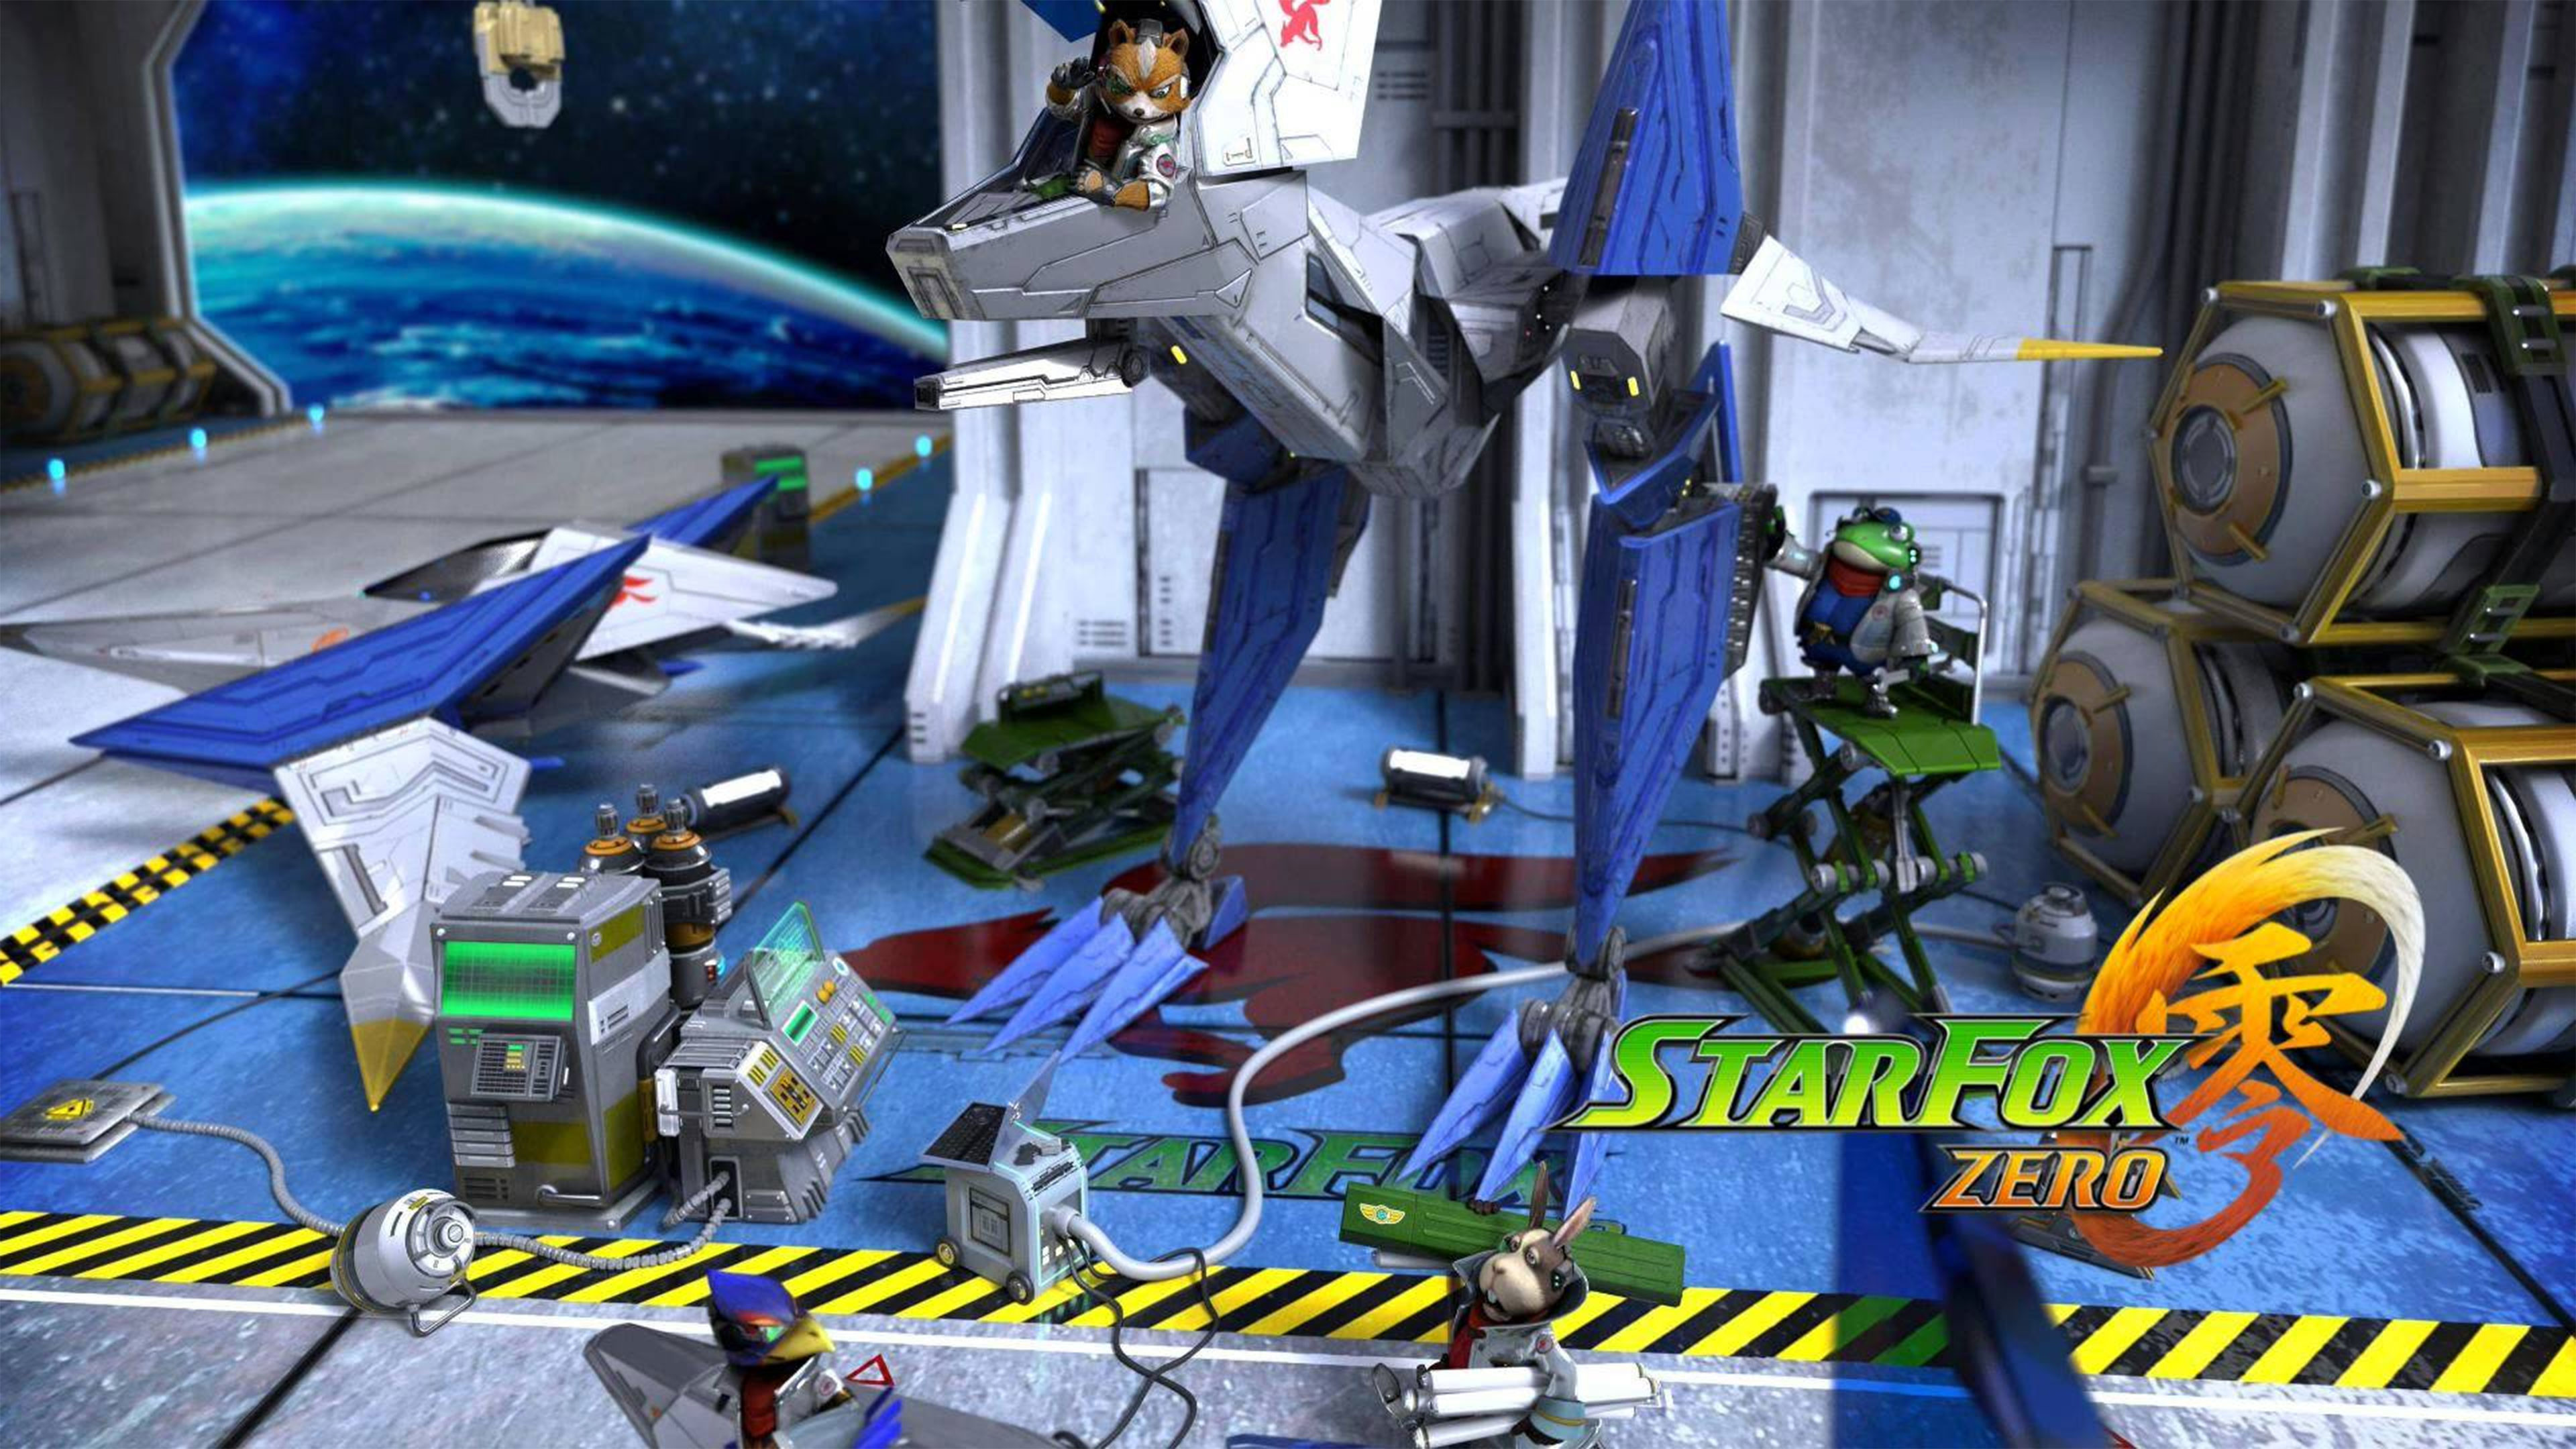 3840x2160 Star Fox Zero 4K Wallpaper ...